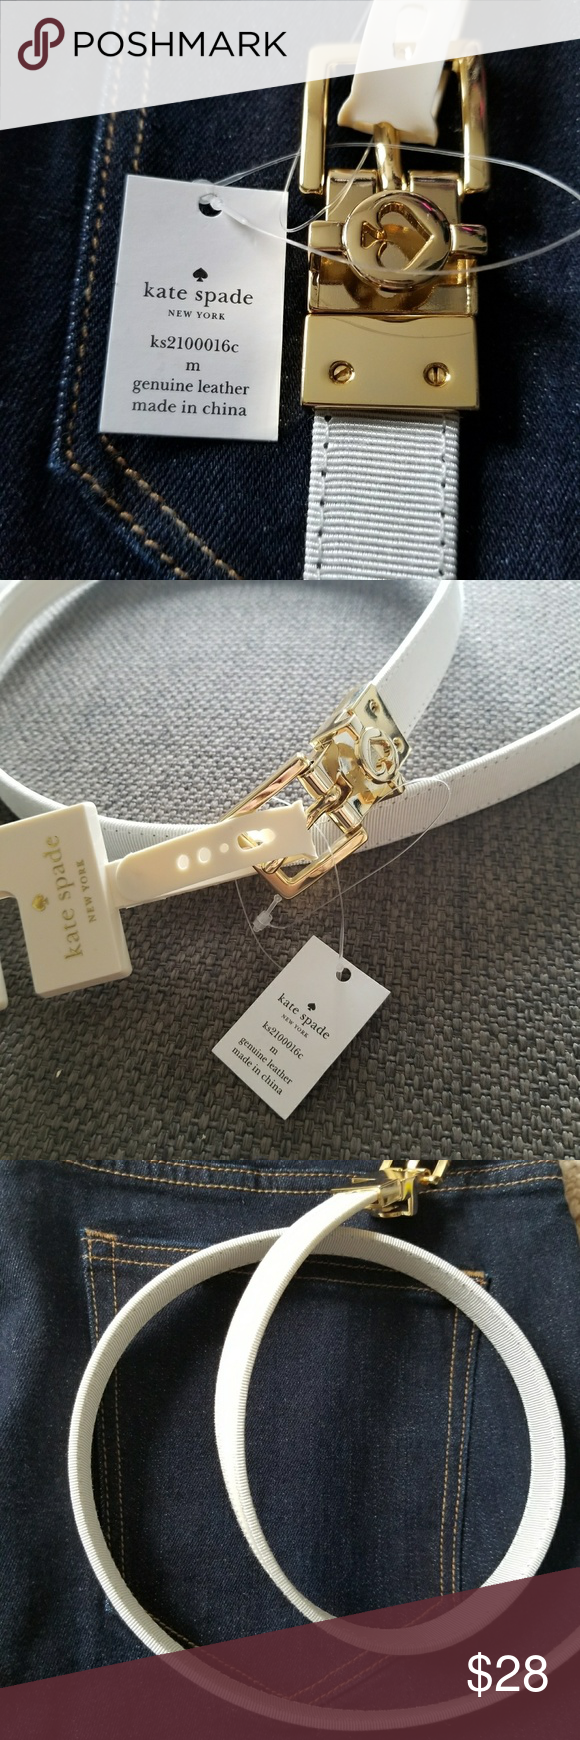 e045a8101bf5 Authentic Kate Spade Off White Leather Belt Size M